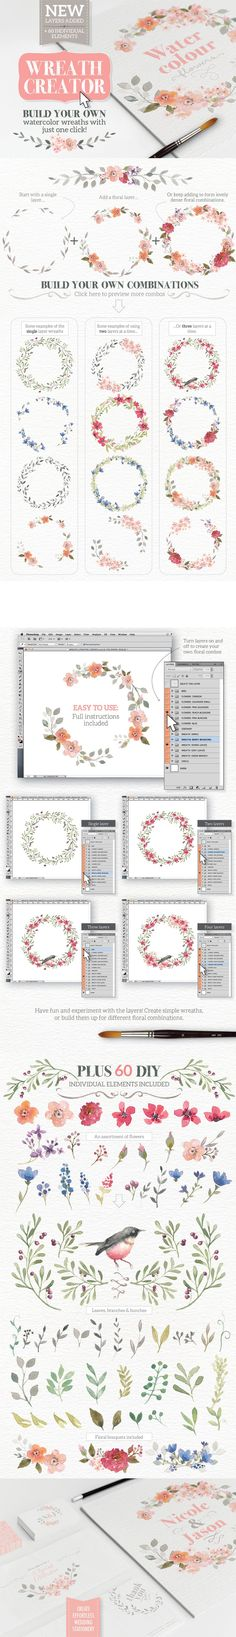 Watercolor Wreath Creator by Lisa Glanz | The Essential, Creative Design Arsenal (1000s of Best-Selling Resources) Bundle Feb 2015 from Design Cuts